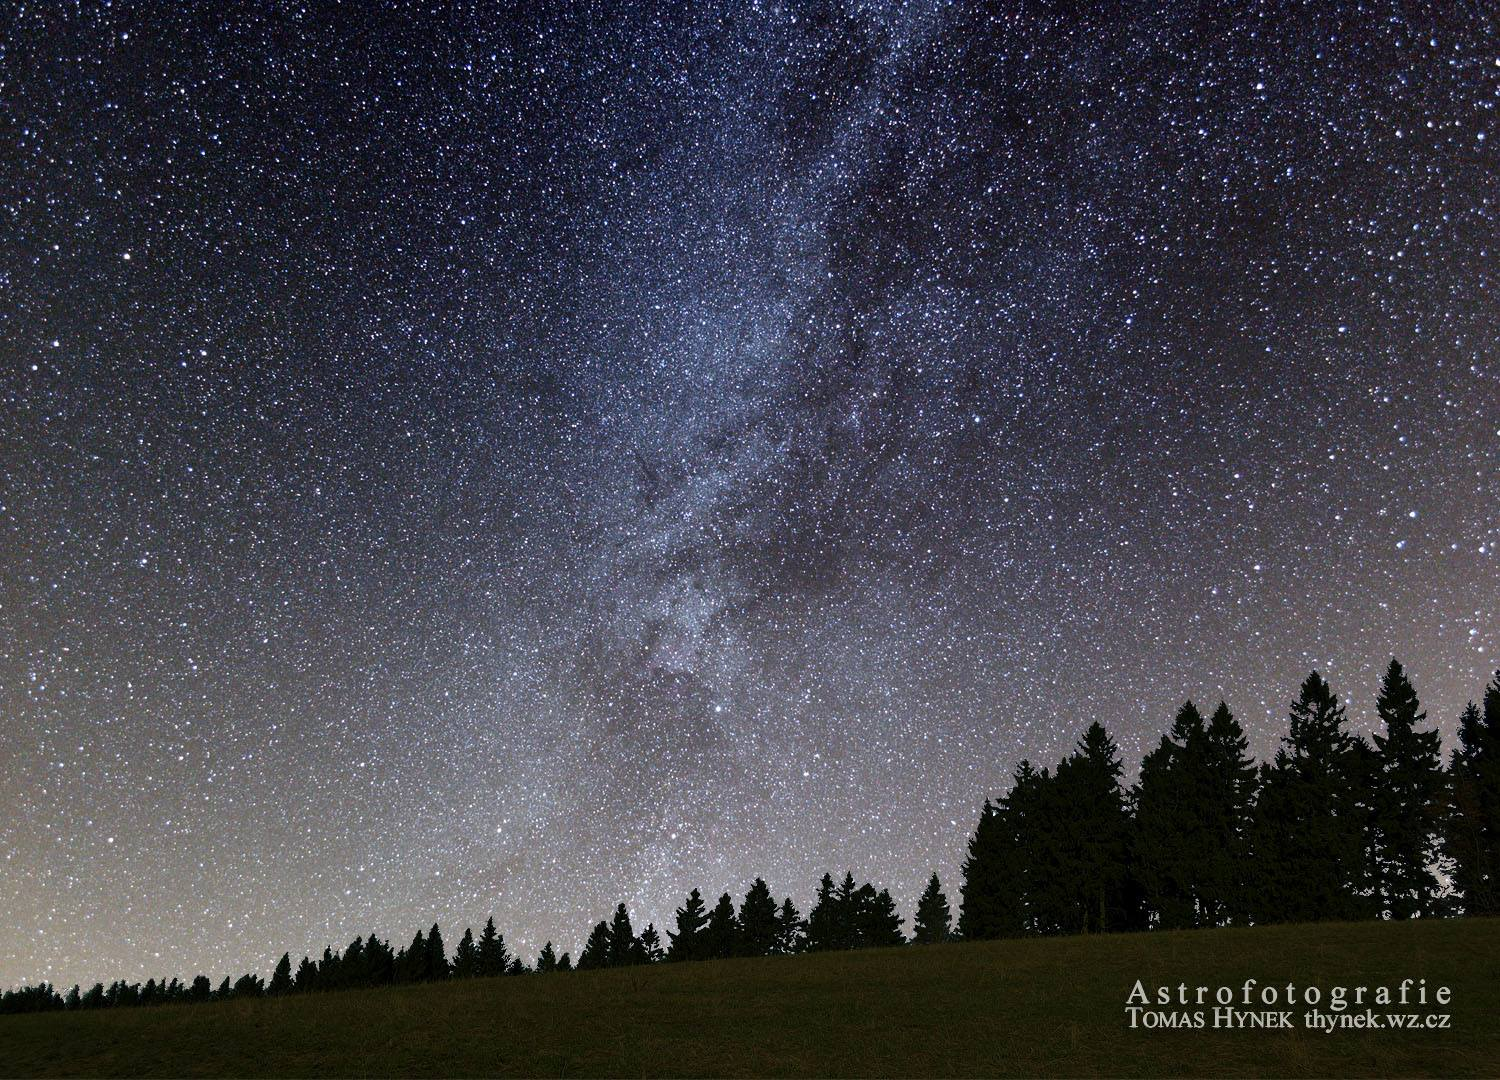 The Czech Republic's dark-sky parks, heaven for stargazers, are becoming endangered